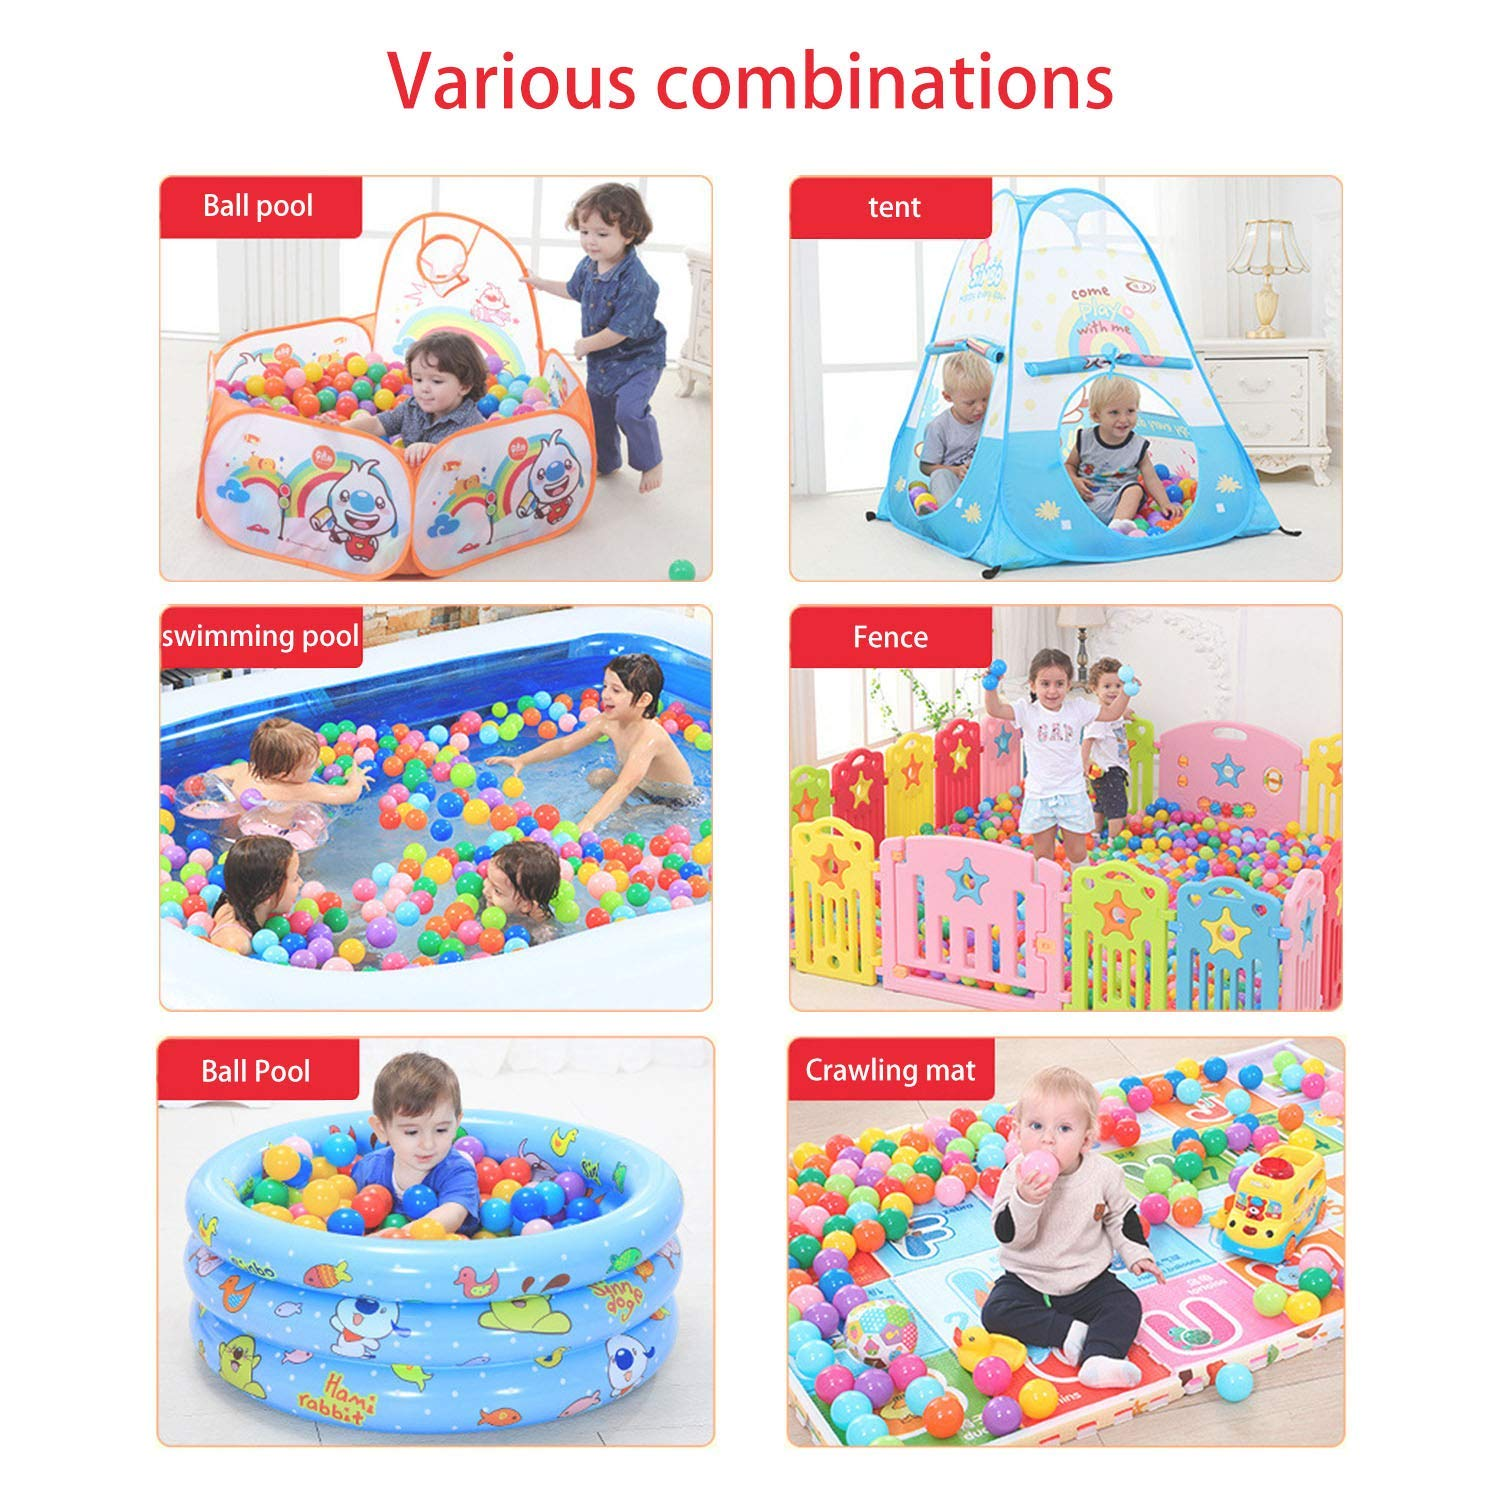 Binwwede Kids Ocean Ball 5 Colors Toddler Baby Ball Pit Pack of 100 Plastic Play Balls (20pcs) by Binwwede (Image #5)